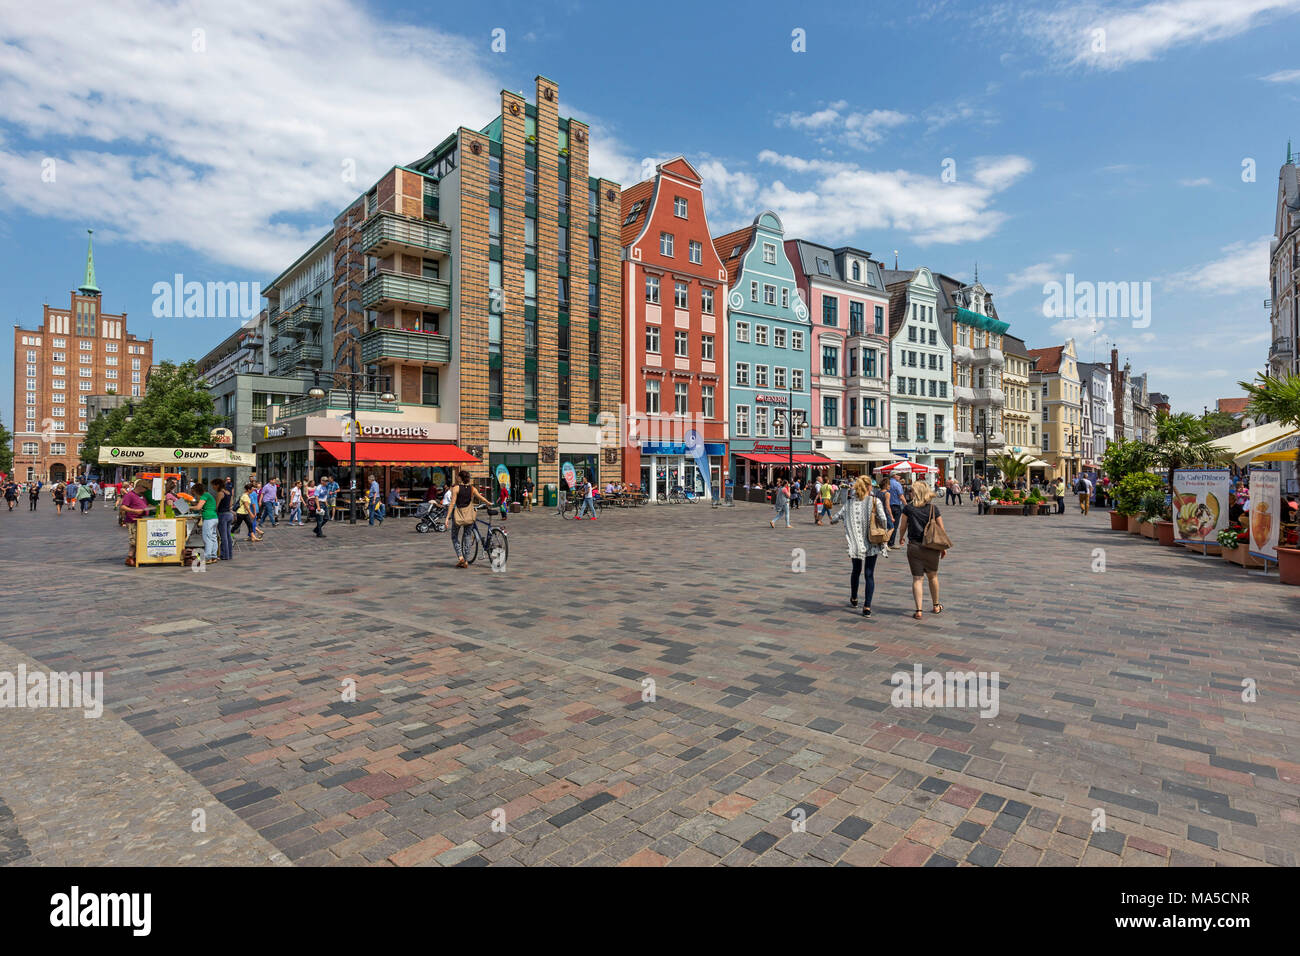 Rostock Shopping Rostock Street Stock Photos Rostock Street Stock Images Alamy